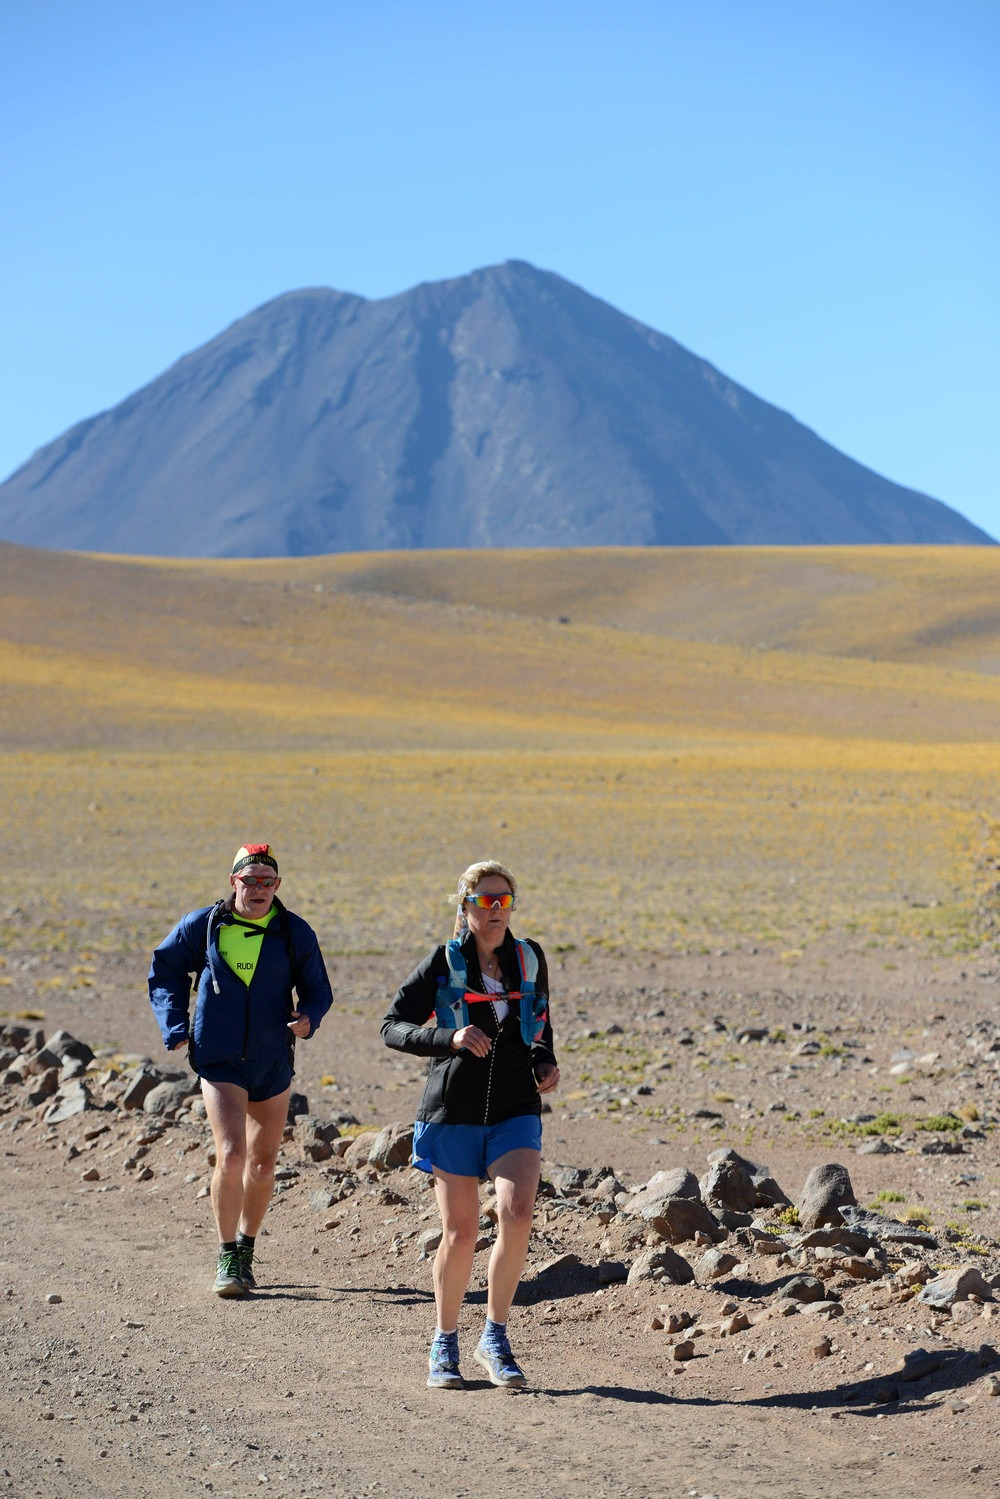 photo: mike king copyright  www.volcanomarathon.com